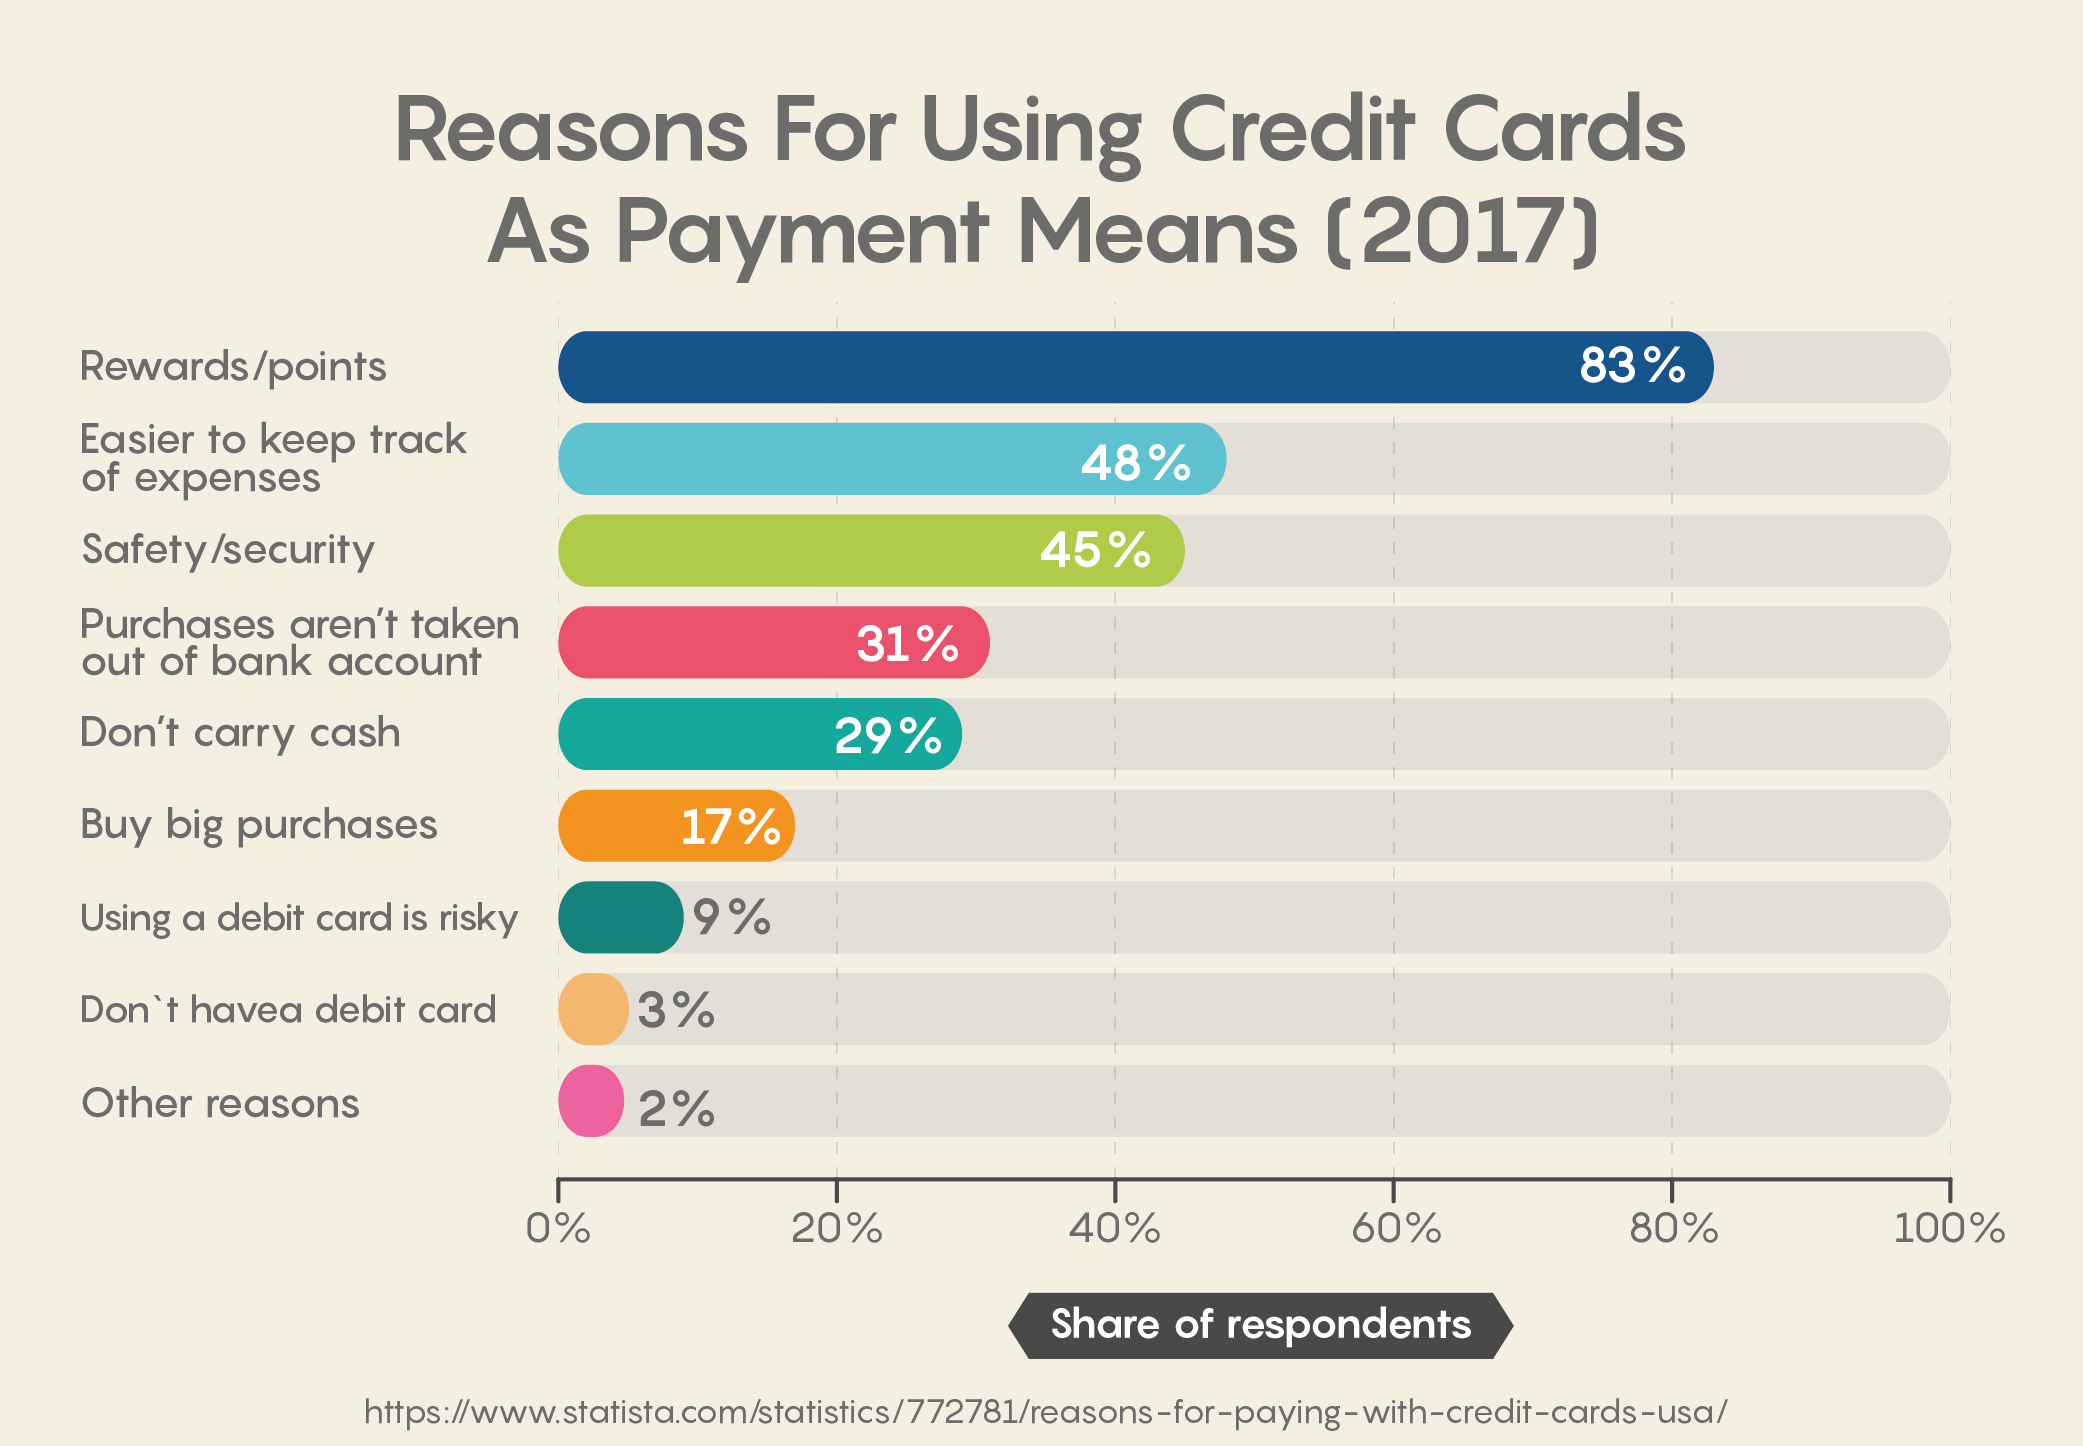 Reasons For Using Credit Cards As Payment Means (2017)